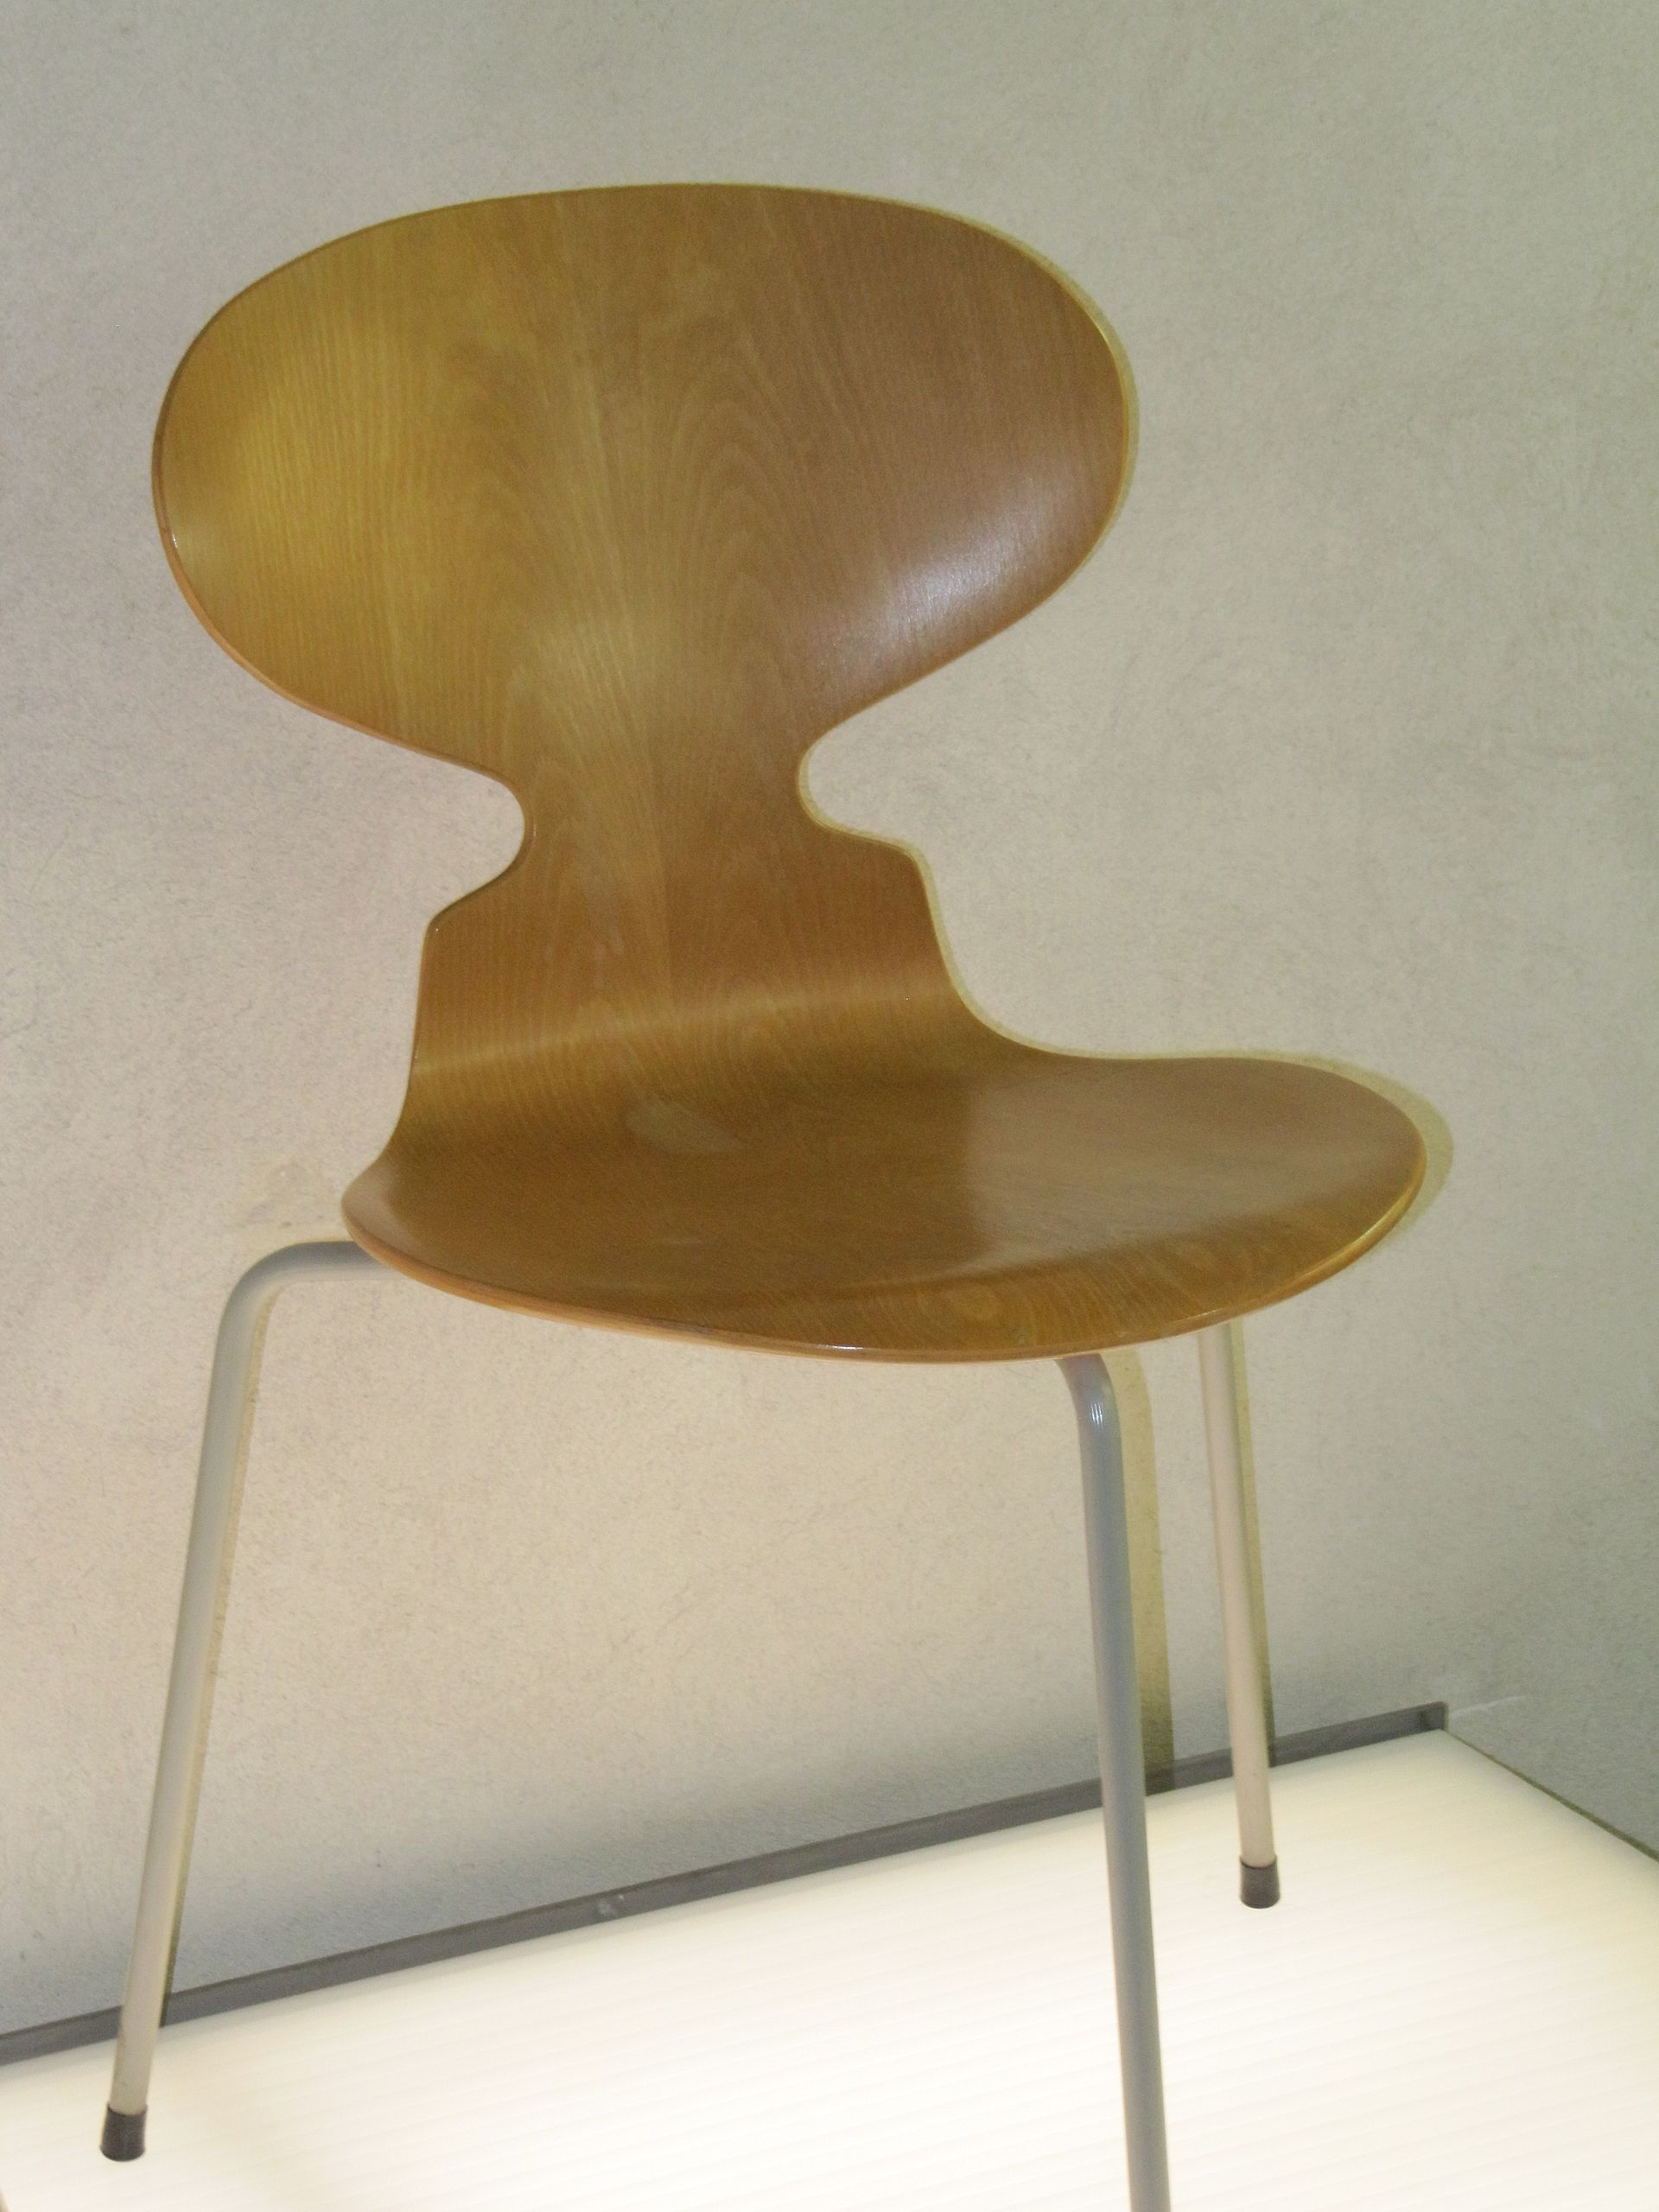 ant chair wikipedia. Black Bedroom Furniture Sets. Home Design Ideas